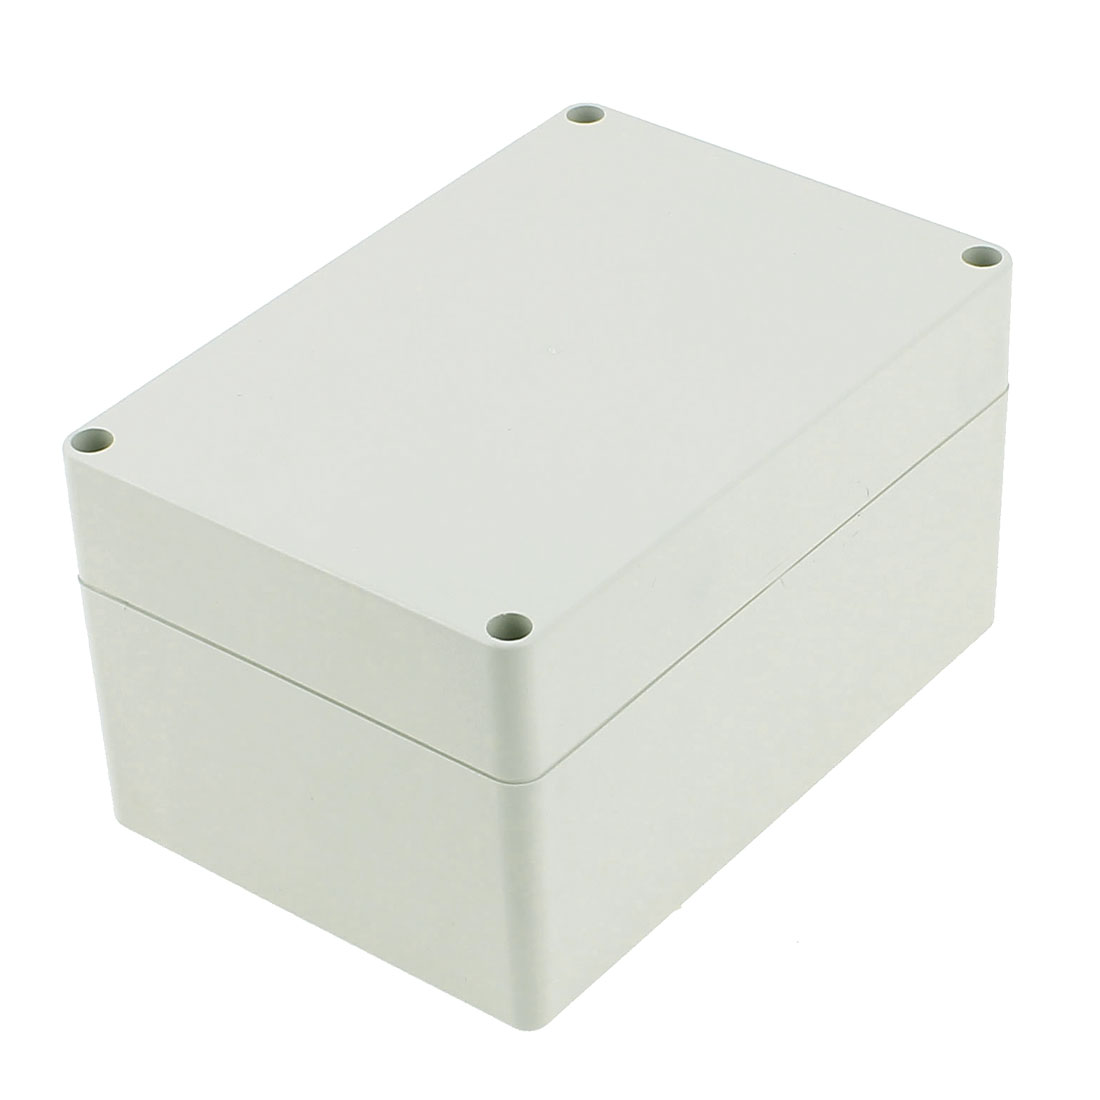 Dustproof IP65 Plastic Enclosure 160x110x90mm Adaptable Case DIY Junction Box